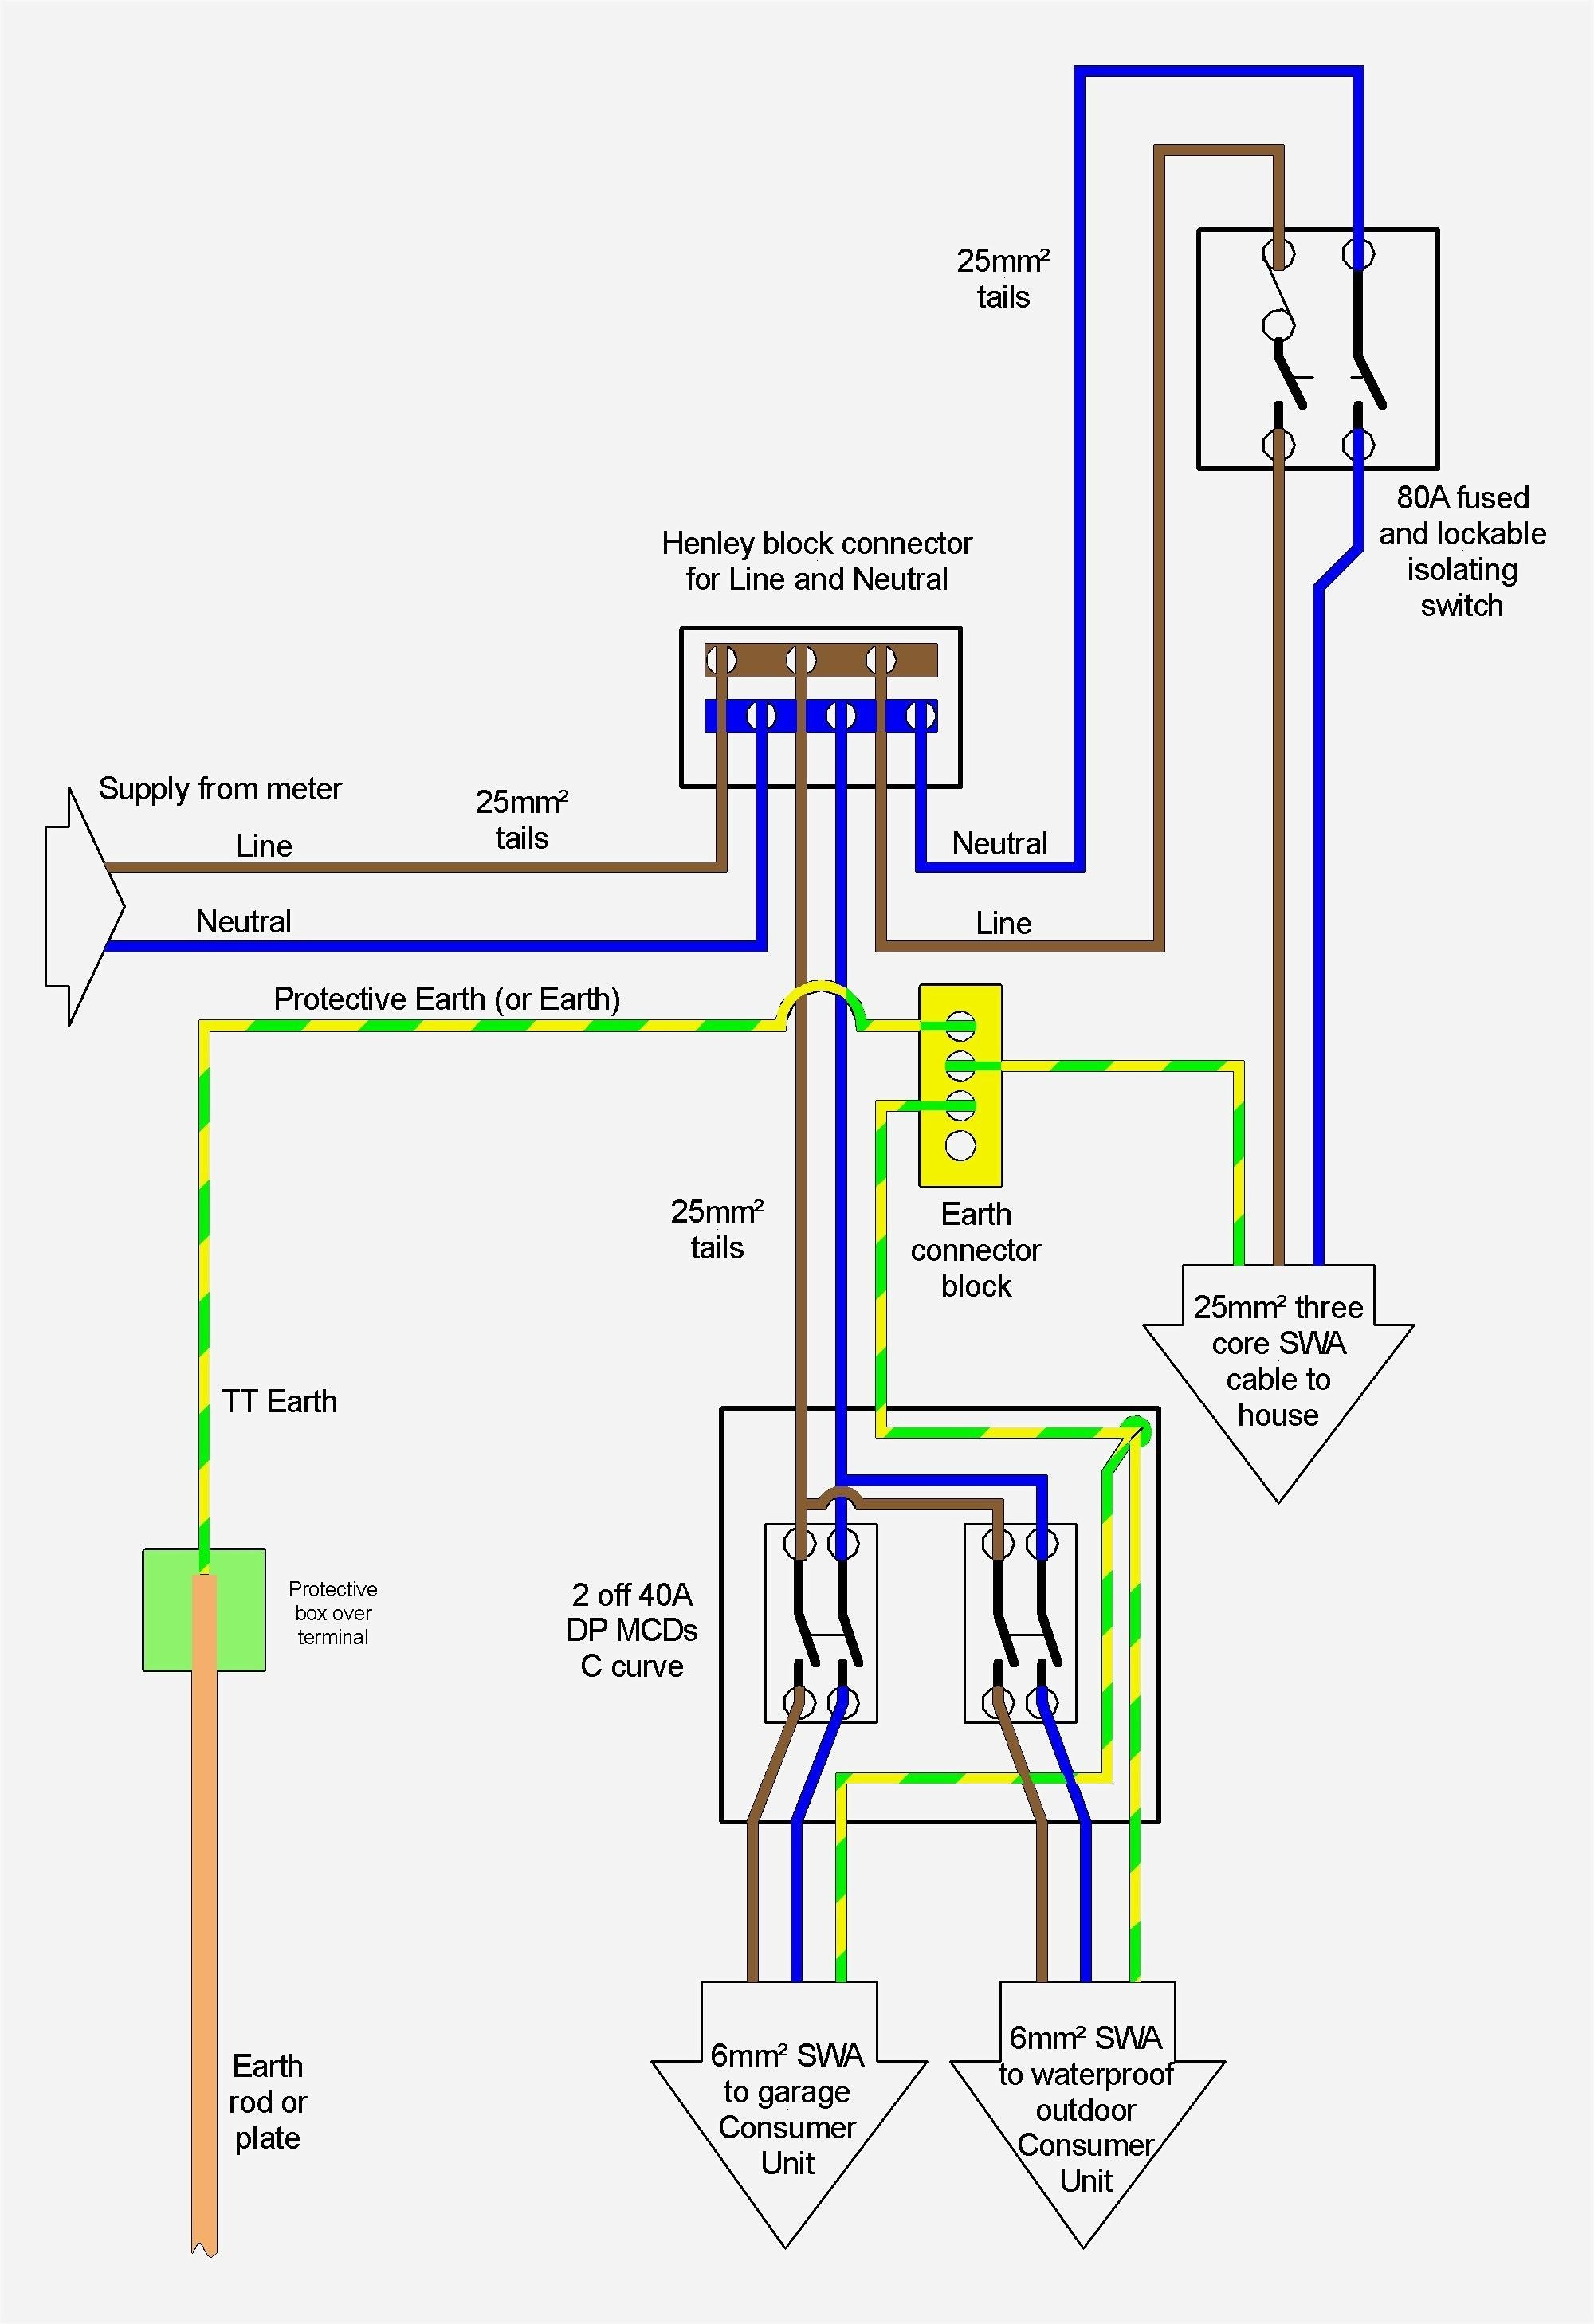 New Wiring Diagram Of A Distribution Board | Diagram ...